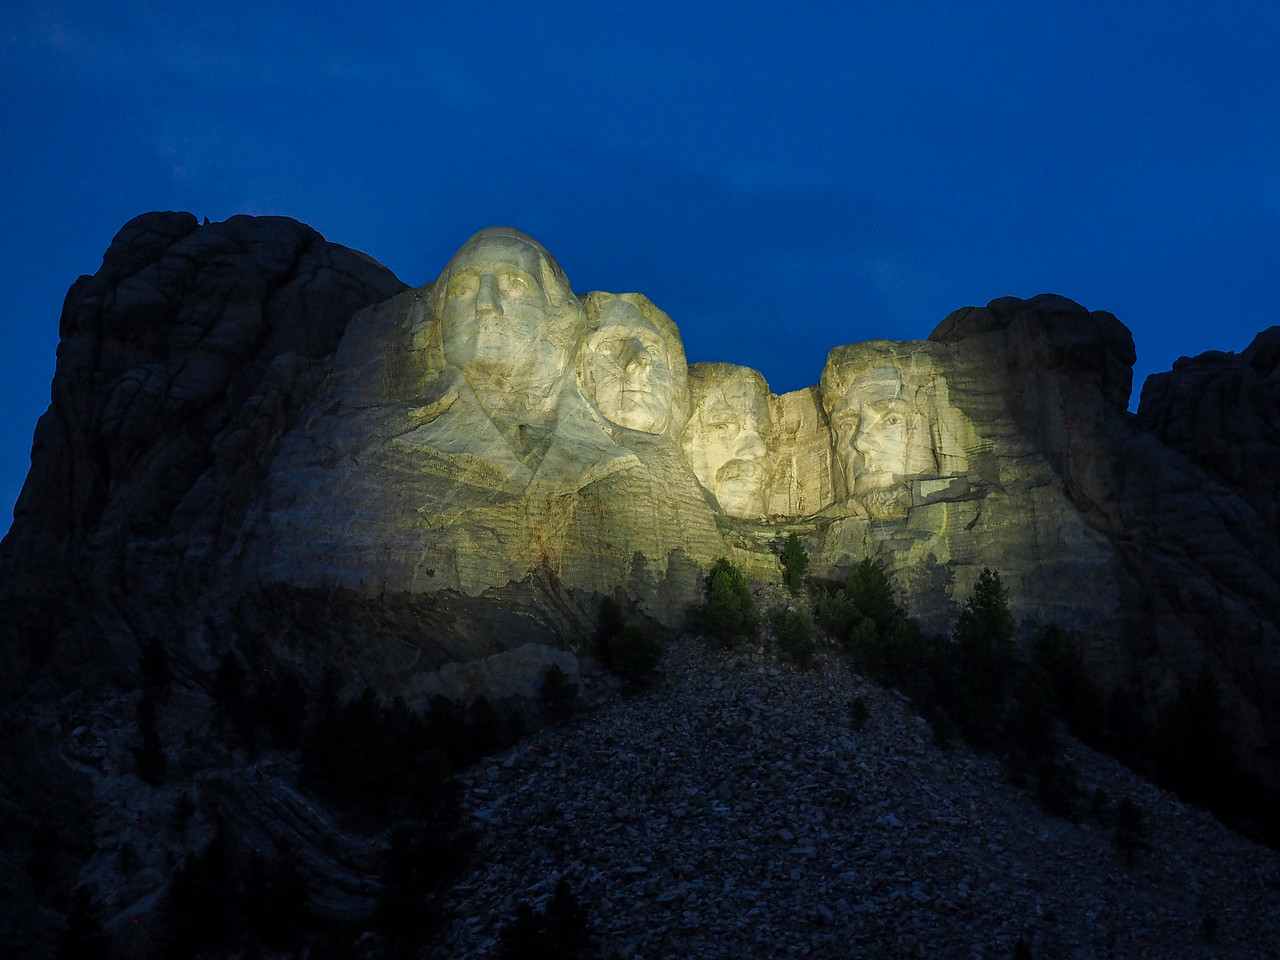 Mount Rushmore after dark